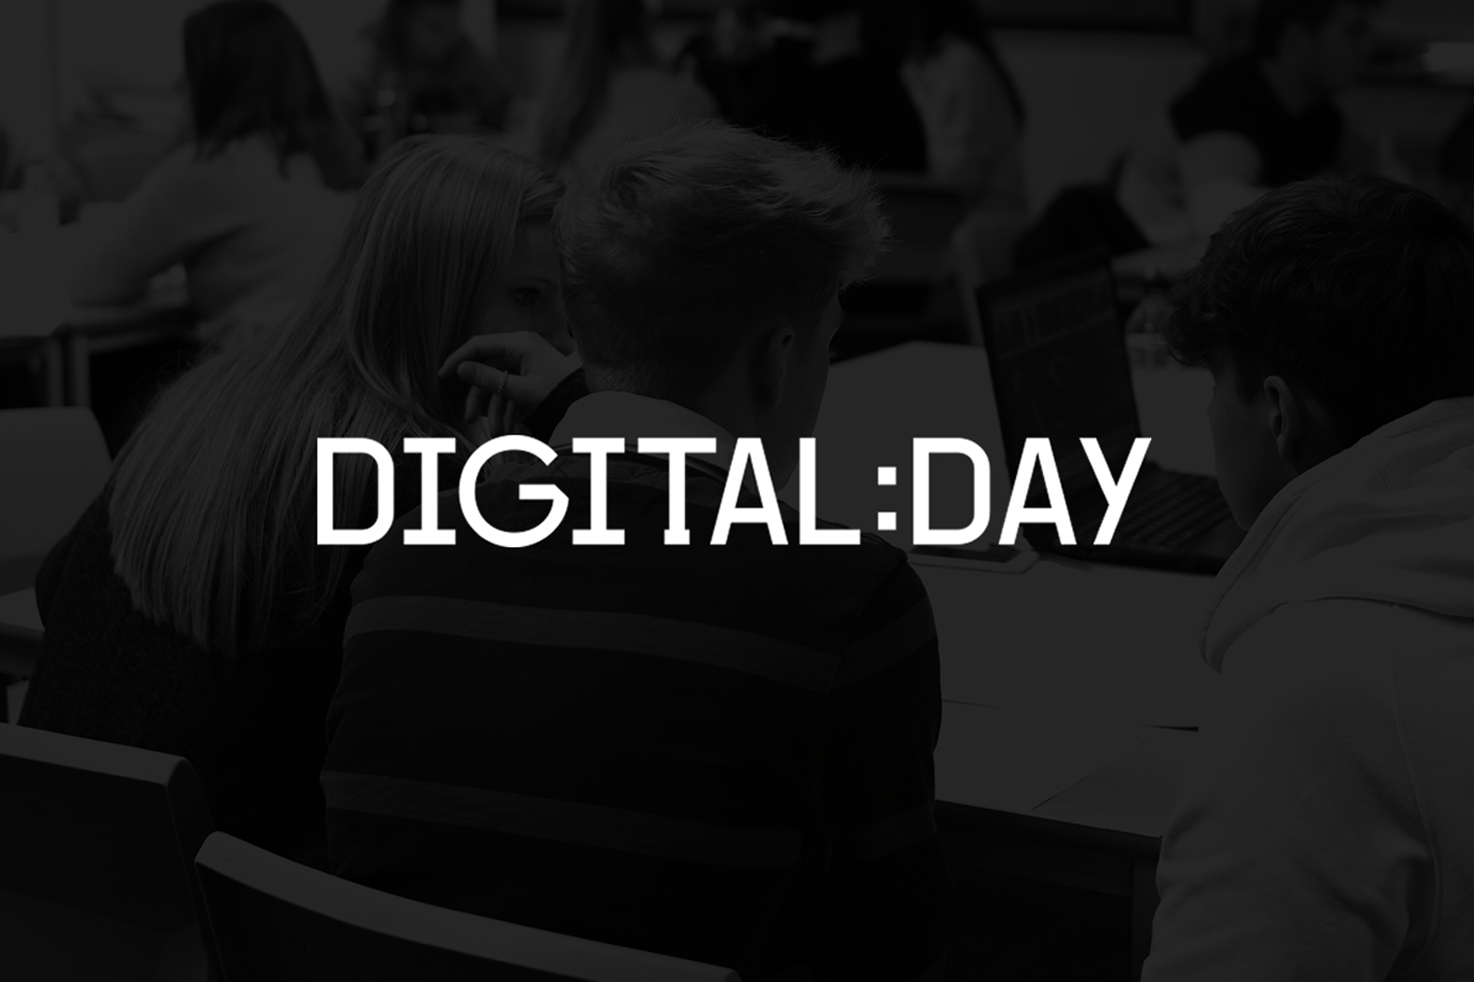 Salad's 2016 Digital Day